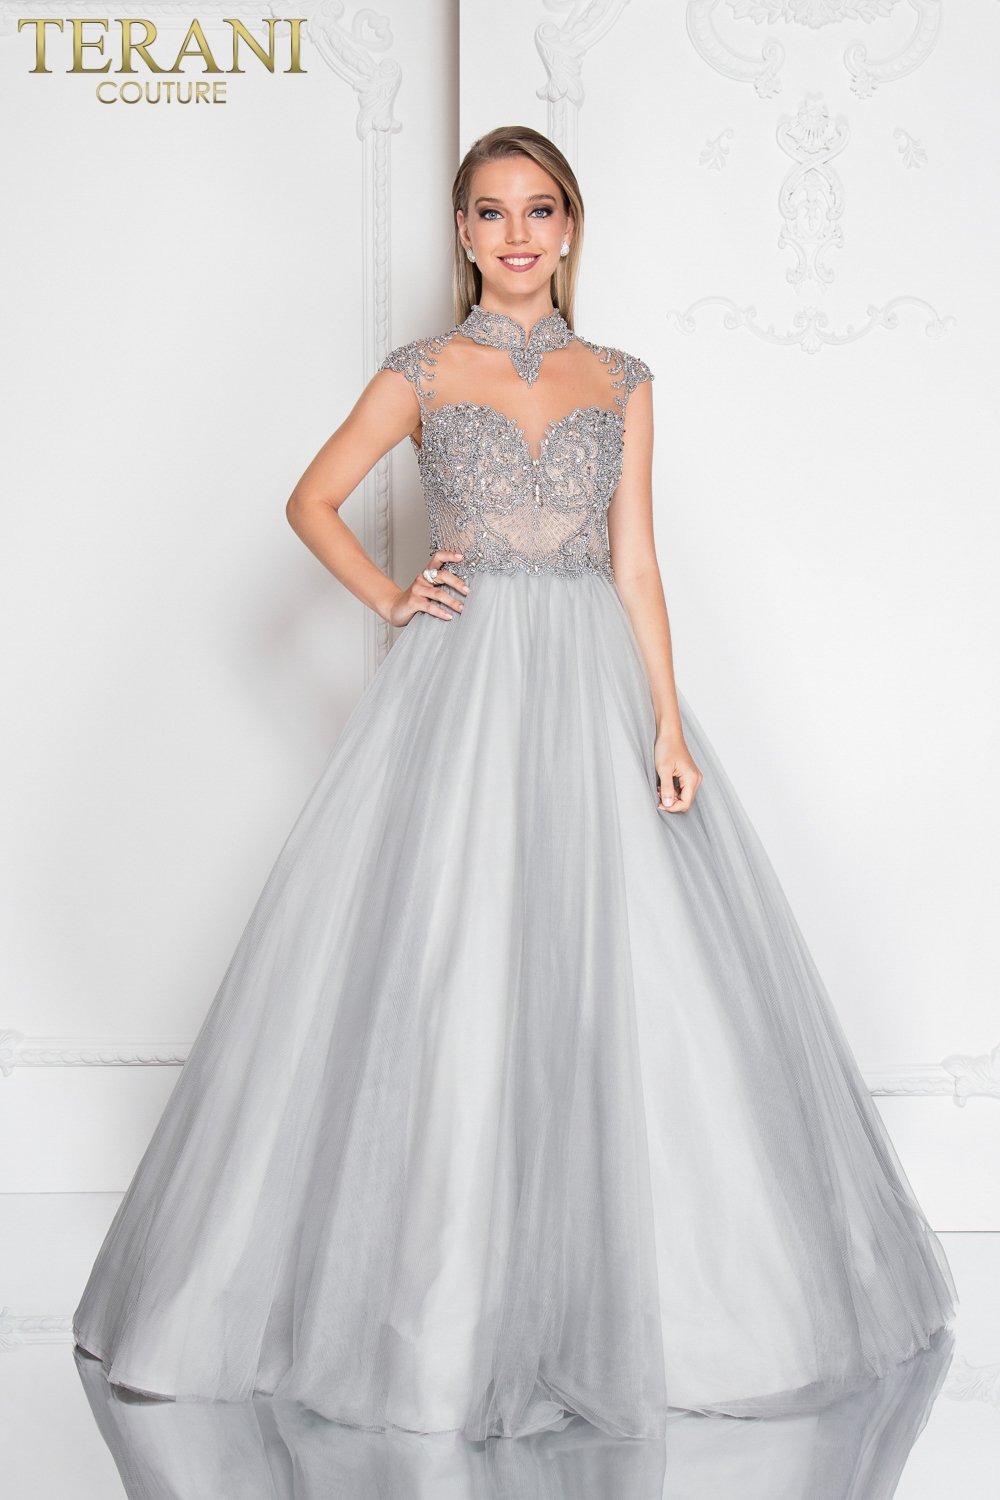 High Illusion Neckline Intricate Prom Ball Gown 1811p5786